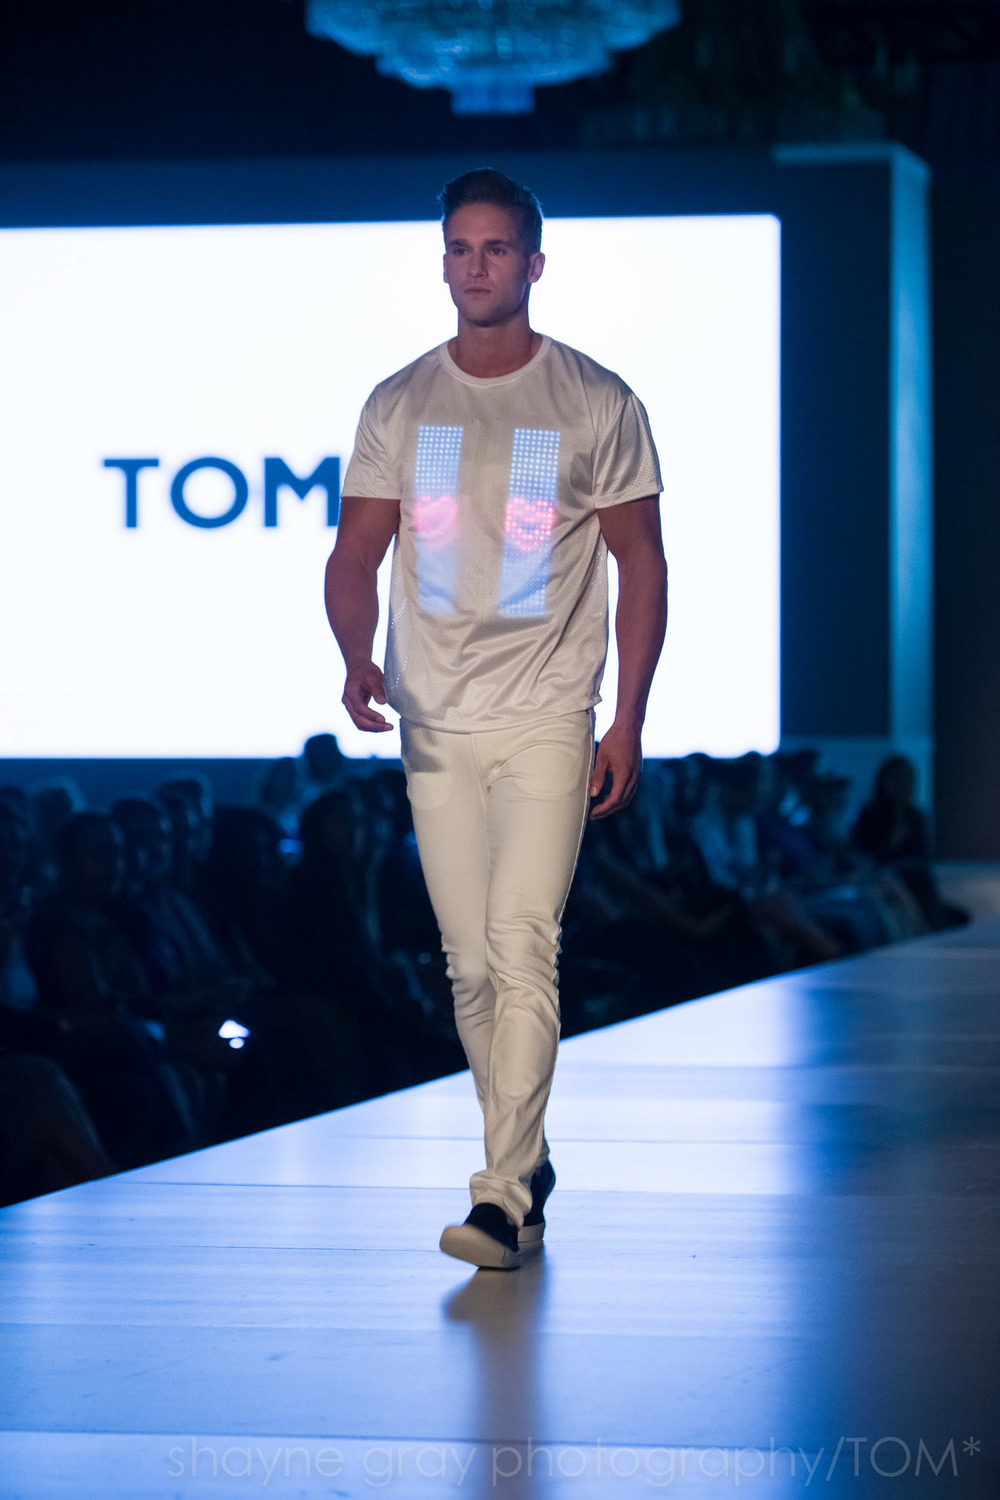 Shayne-Gray-Toronto-men's-fashion_week-TOM-wearables-wearable-technology-8741.jpg